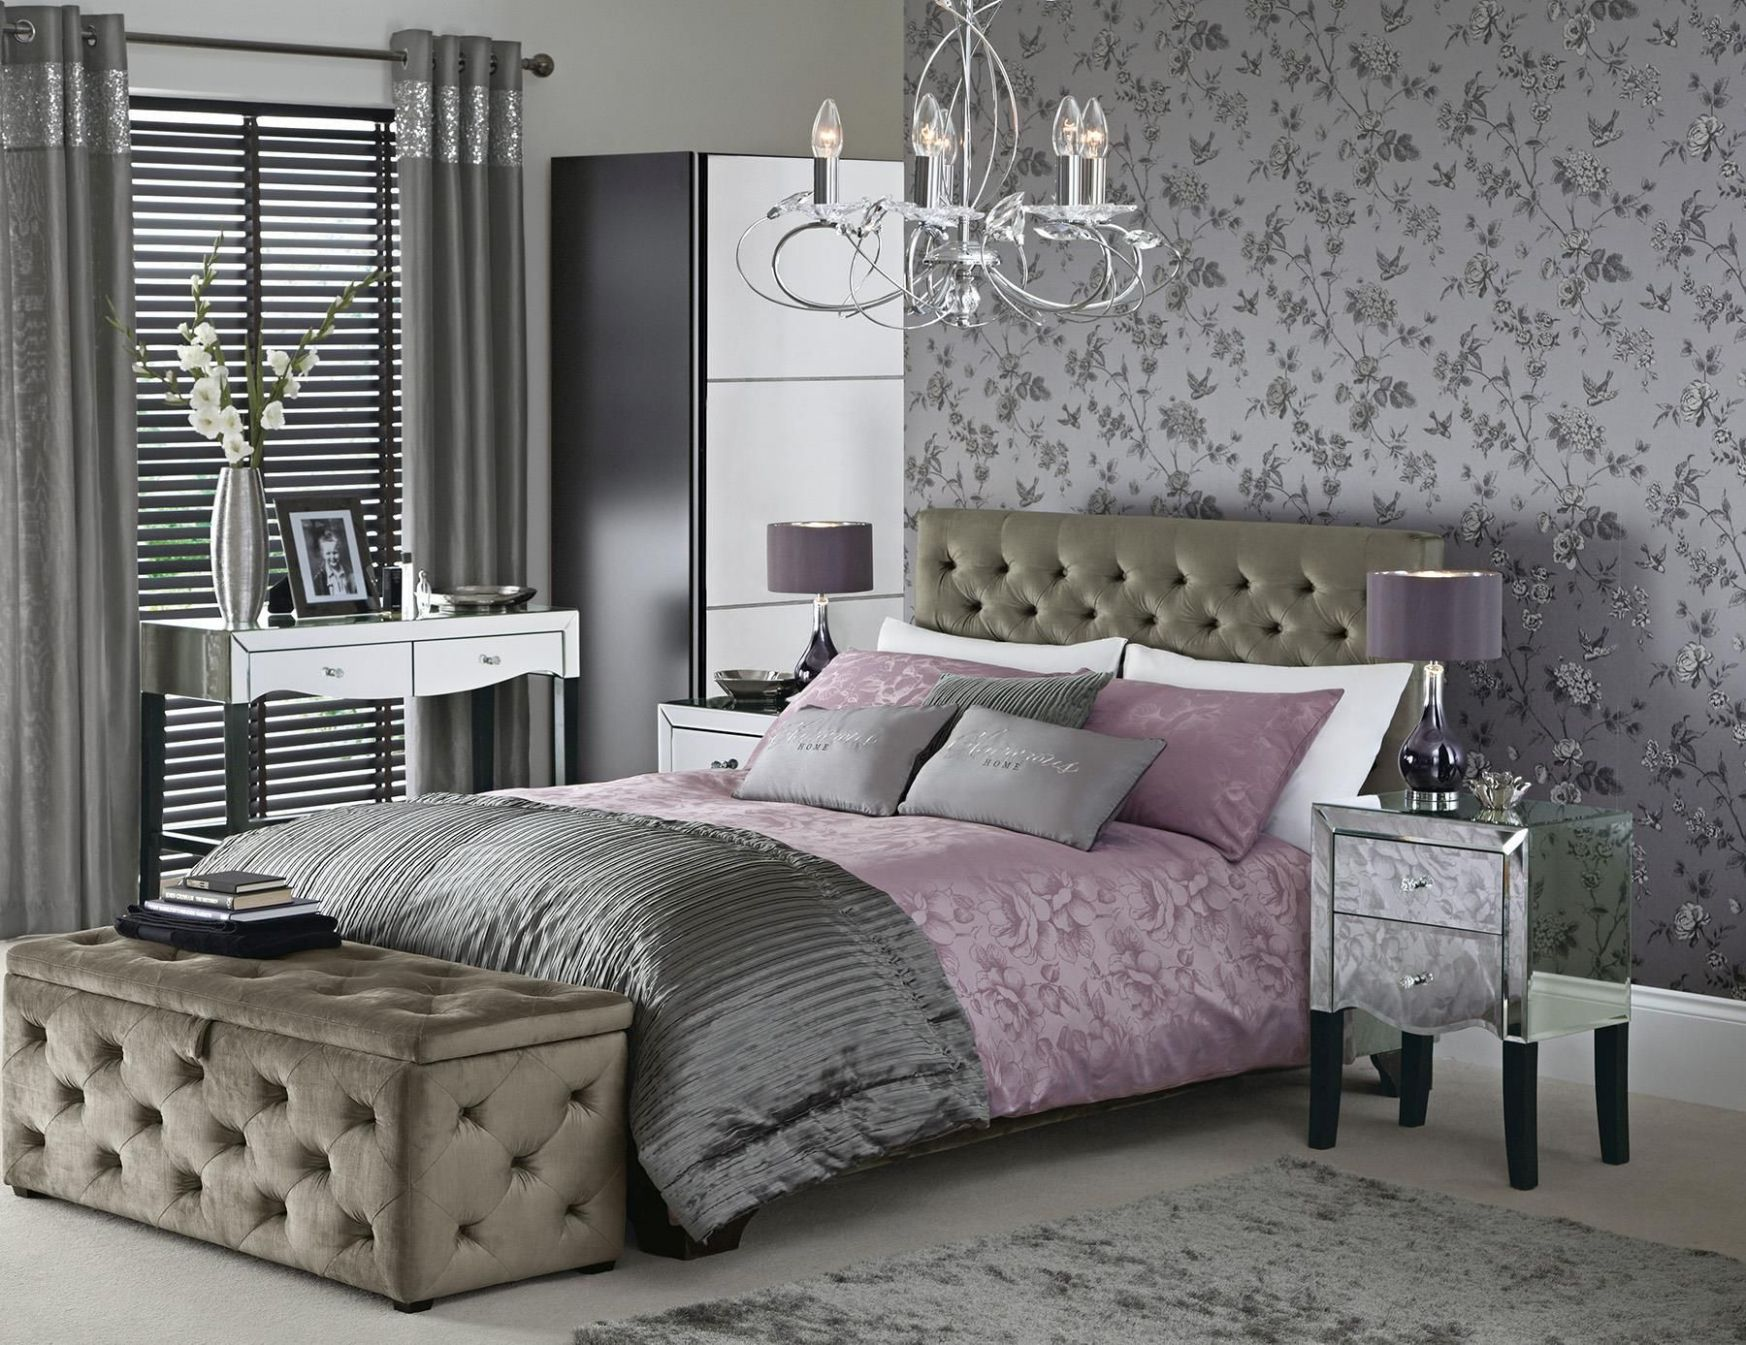 Gatsby bedroom collection from Next HOME | Bedroom design, Home ..